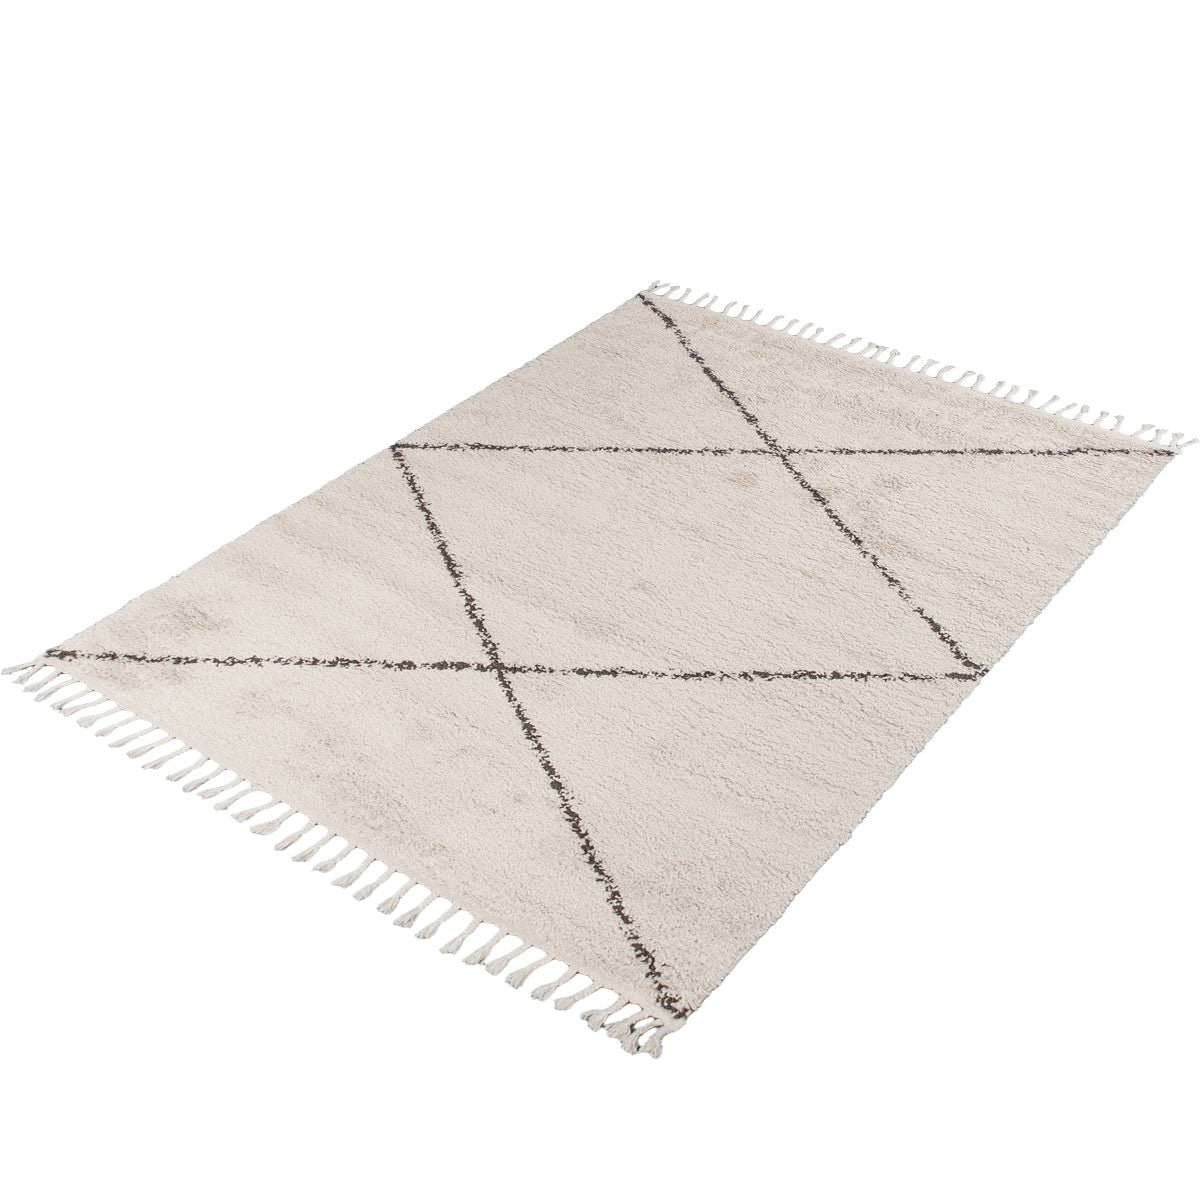 Shaggy Marrakech Rug 05 Cream/Black 7